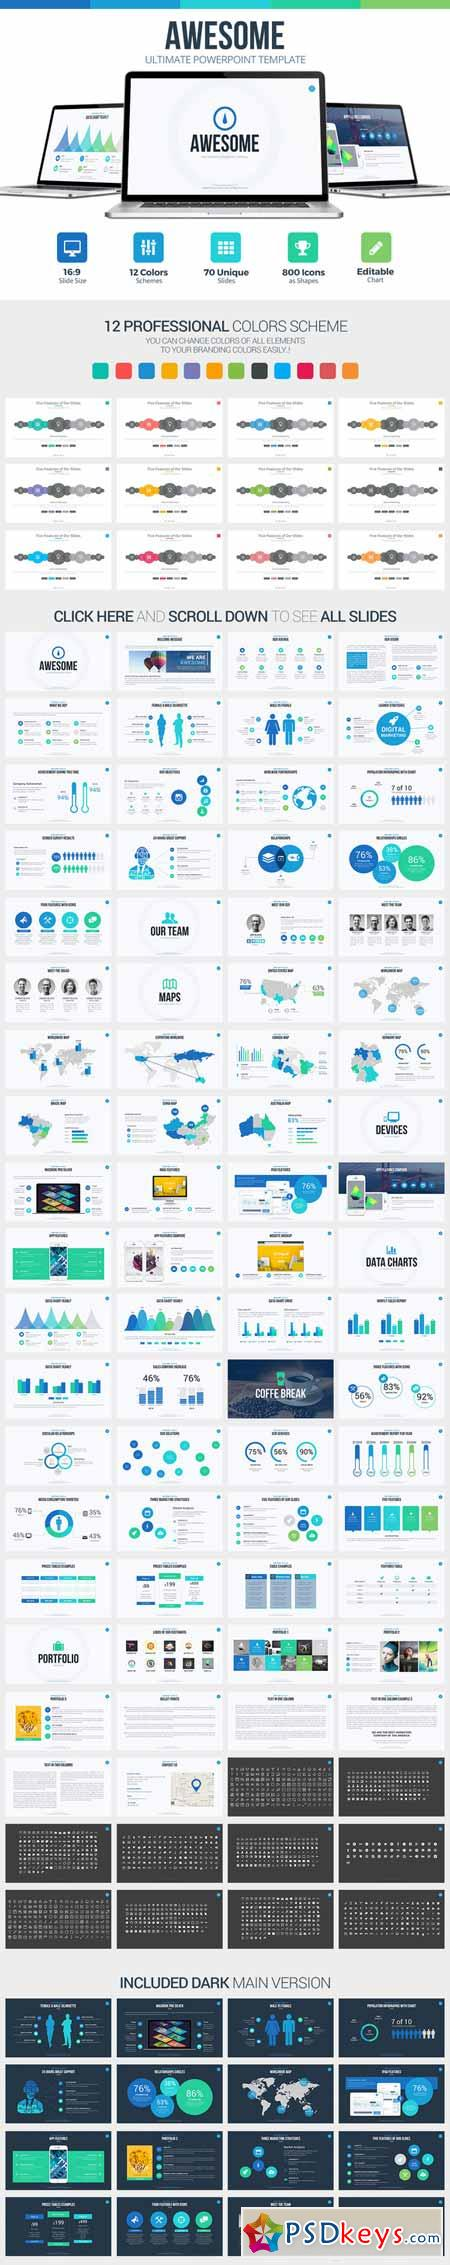 Awesome Powerpoint Template 365445